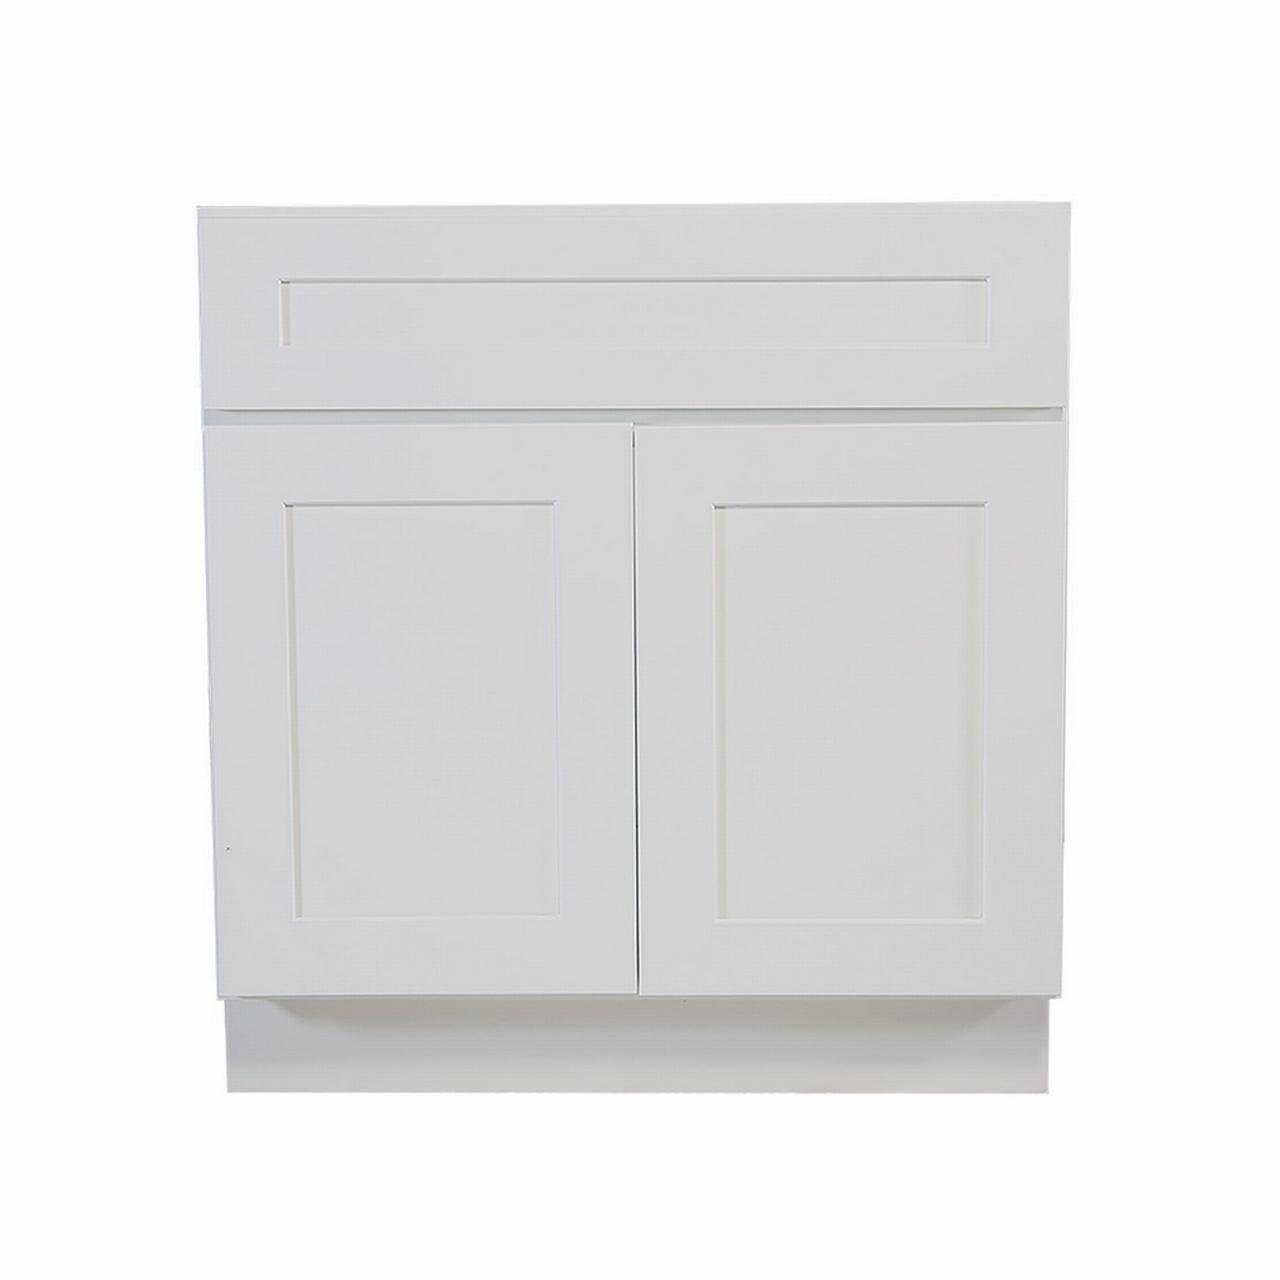 Fully Assembled Kitchen Cabinets: Design House 613273 Brookings Fully Assembled Shaker Sink